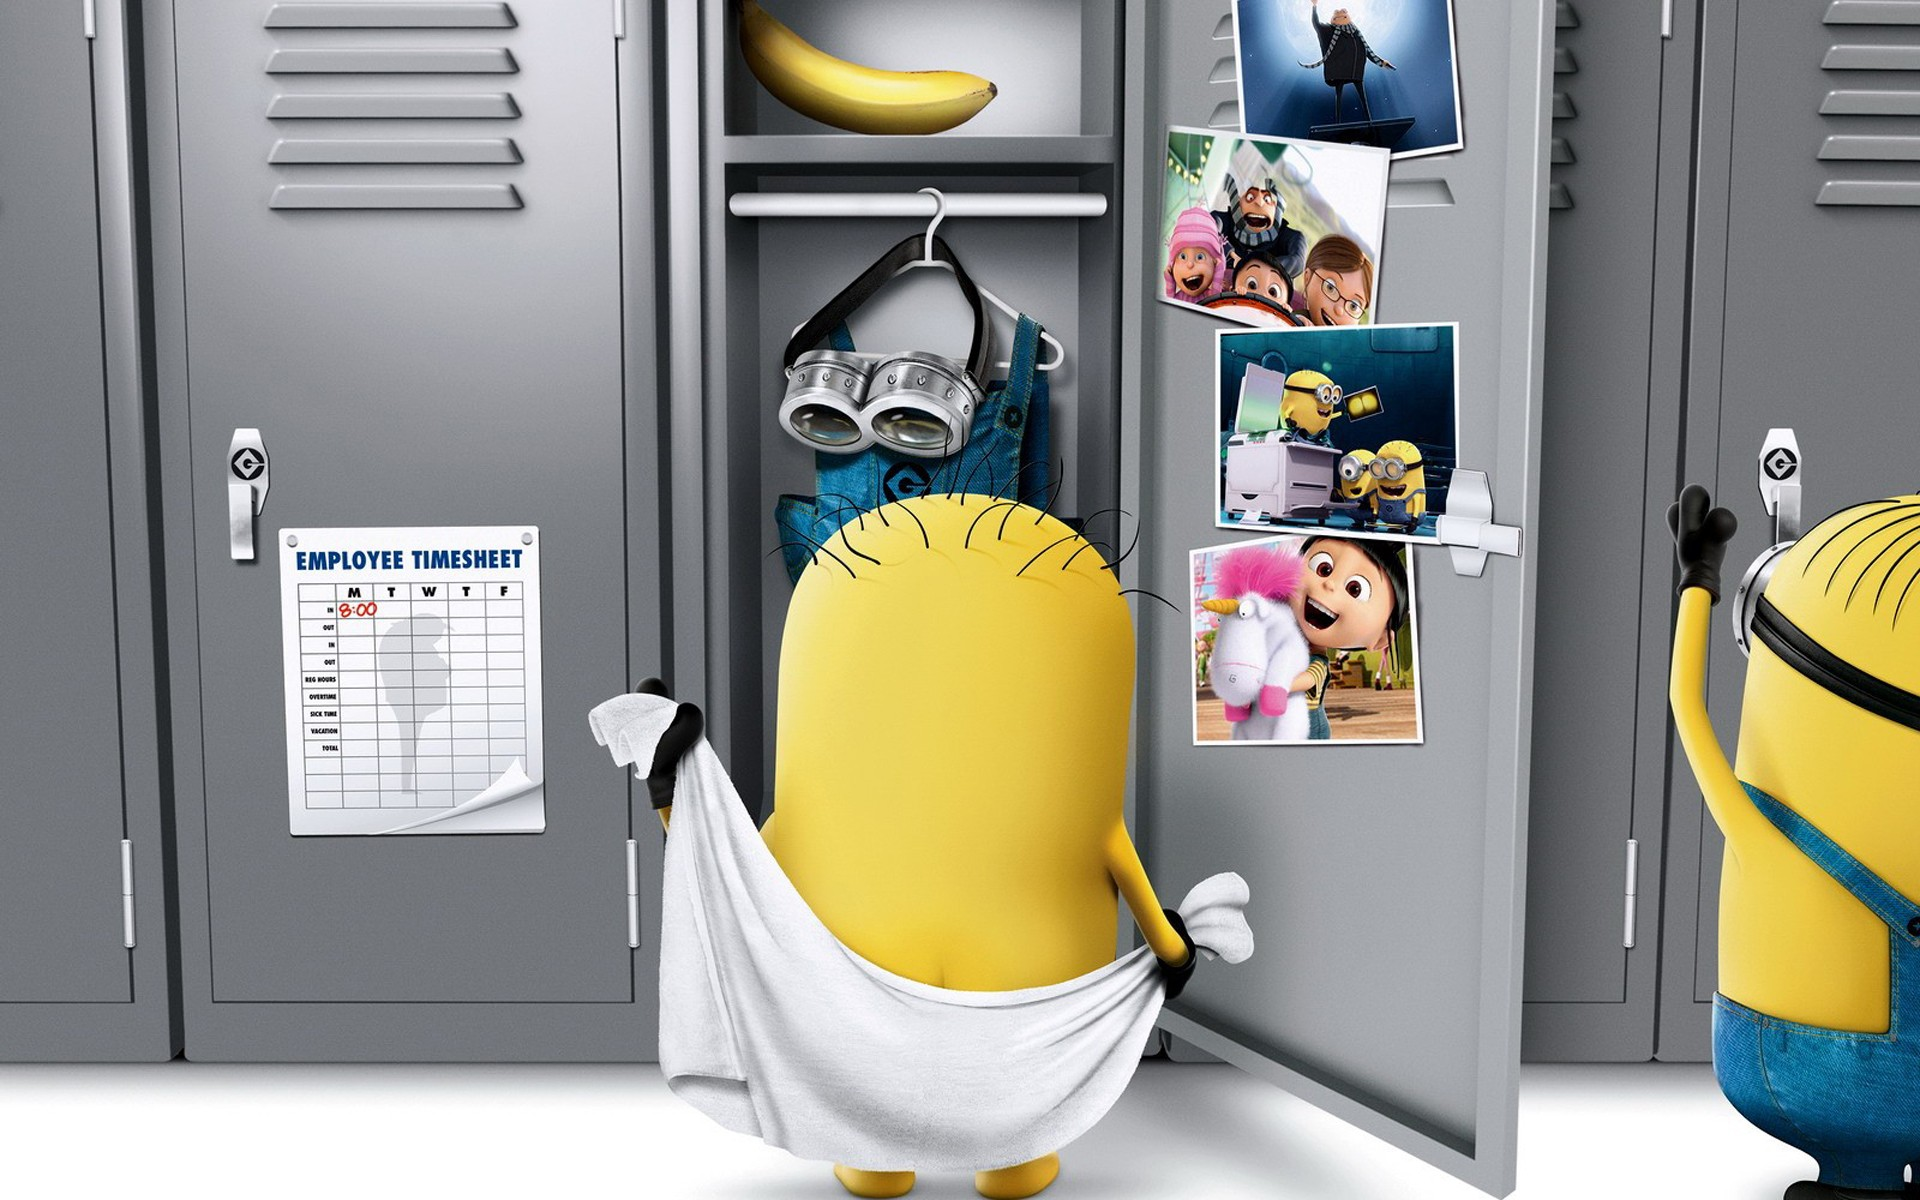 fondo gru mi villano favorito 2 hd